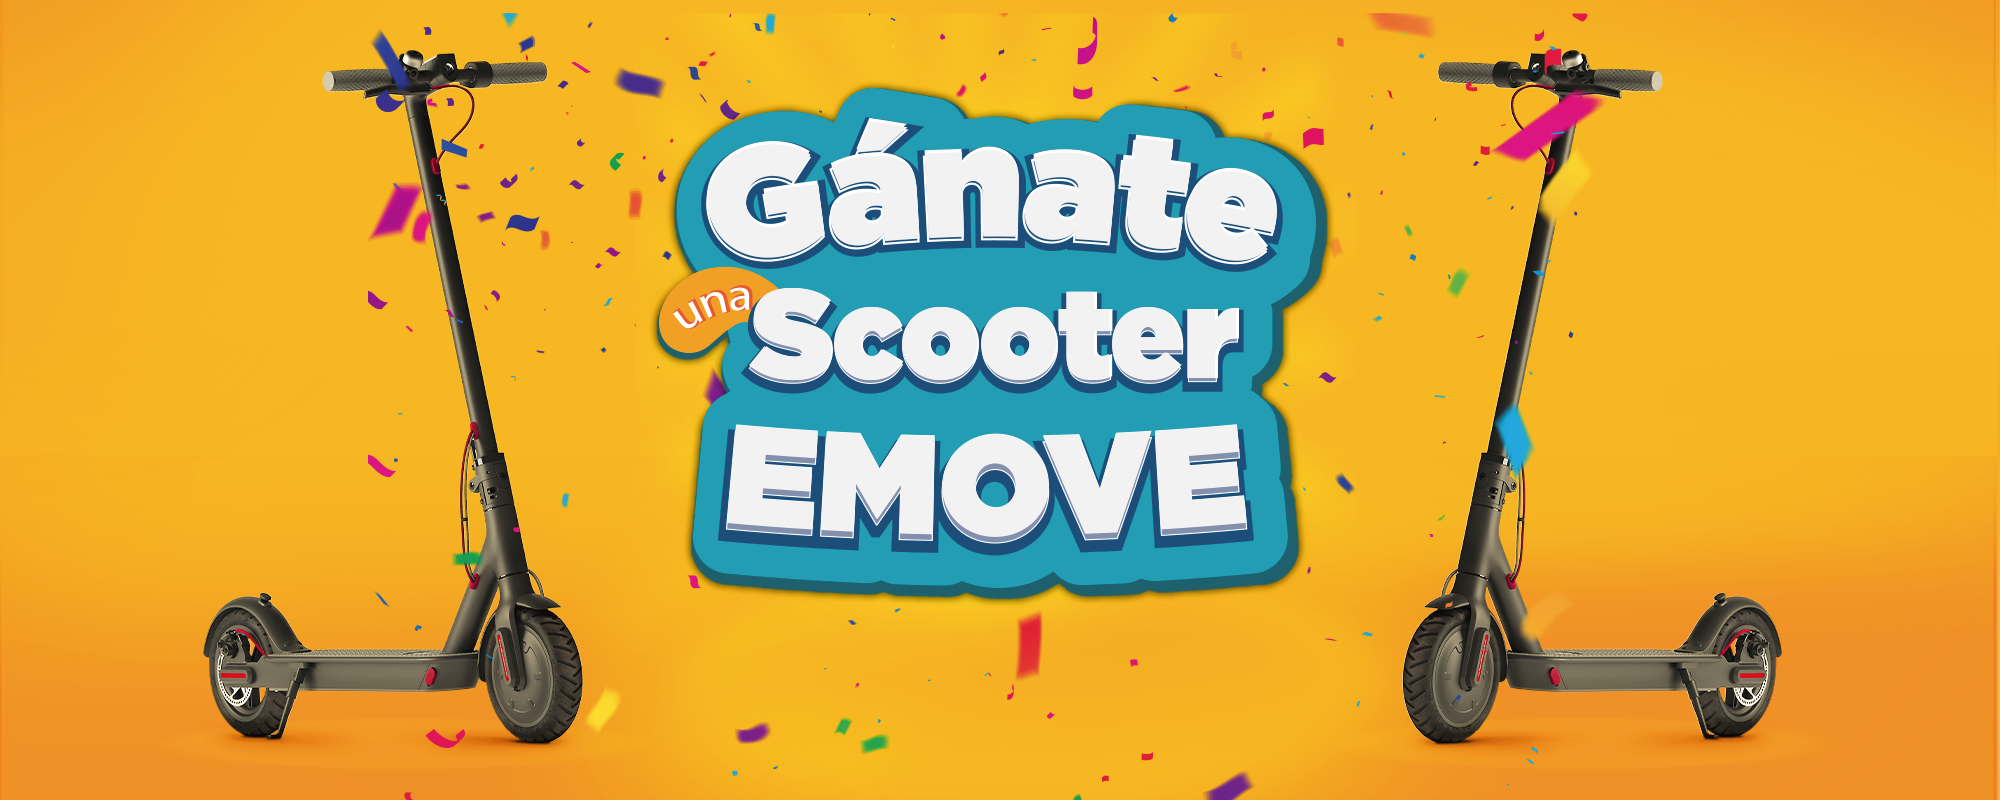 Gánate una scooter emove